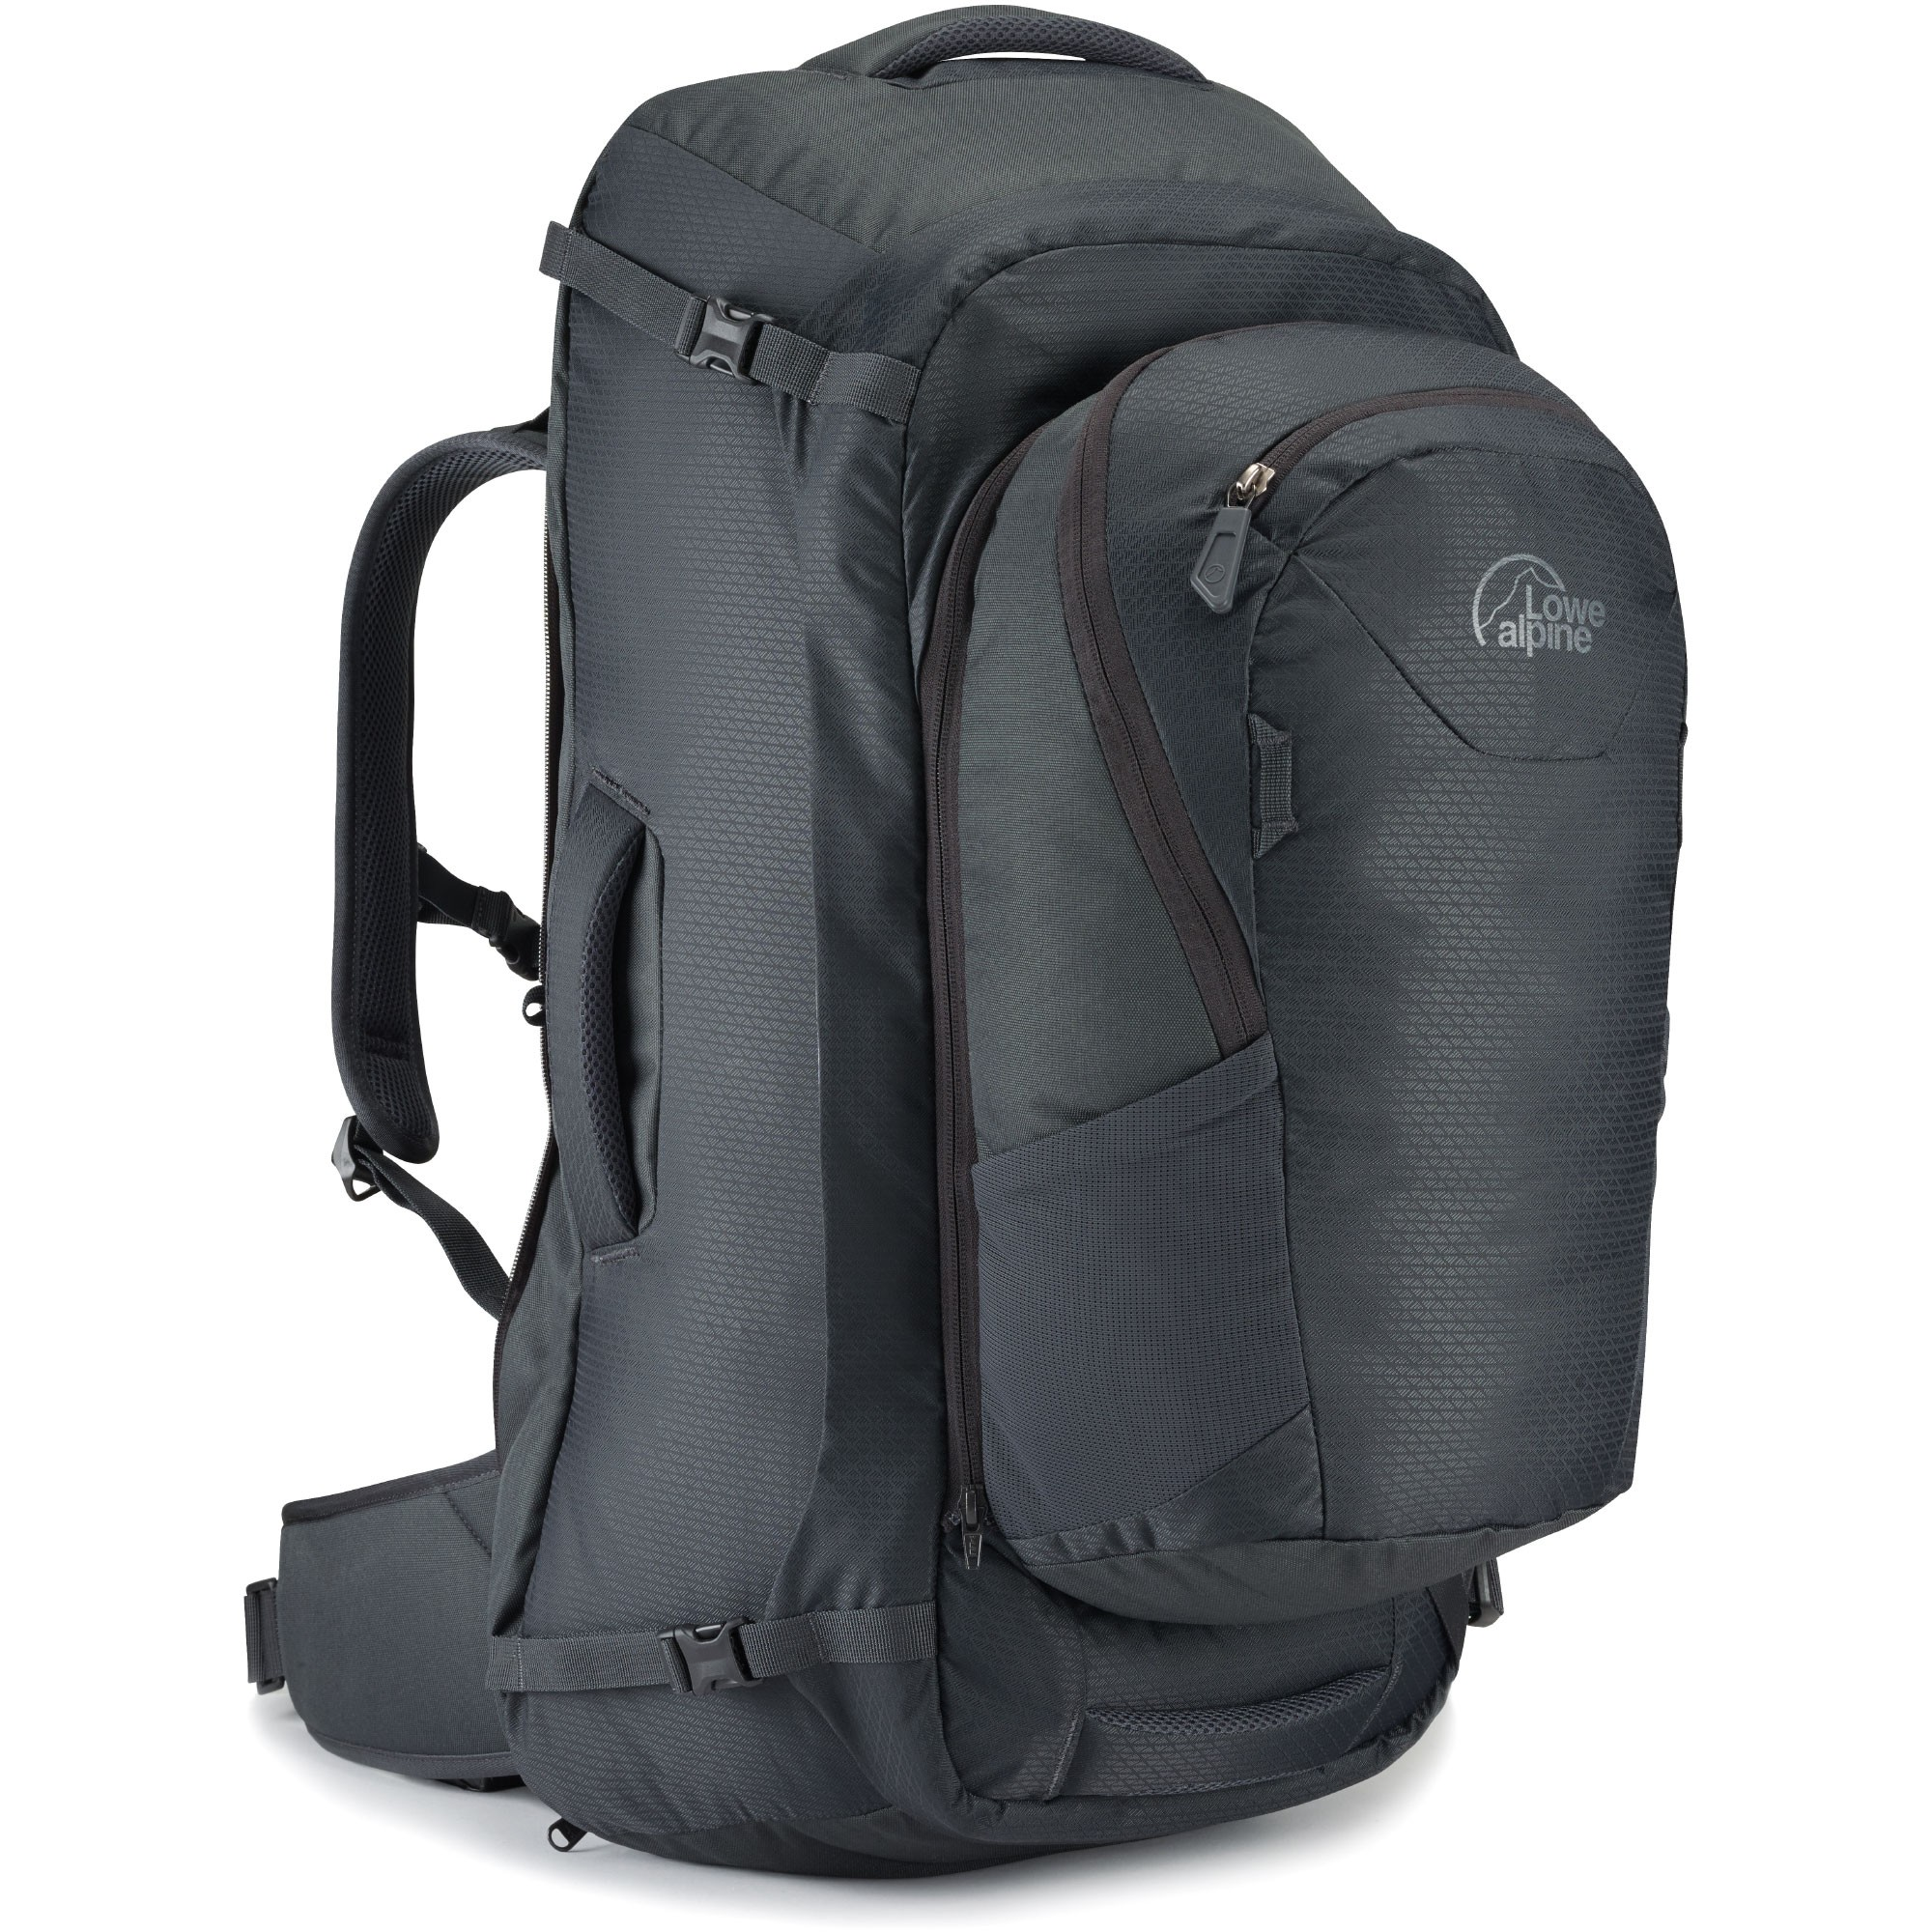 The Lowe Alpine AT Voyager 70 (55+15 litres) Travel Bag